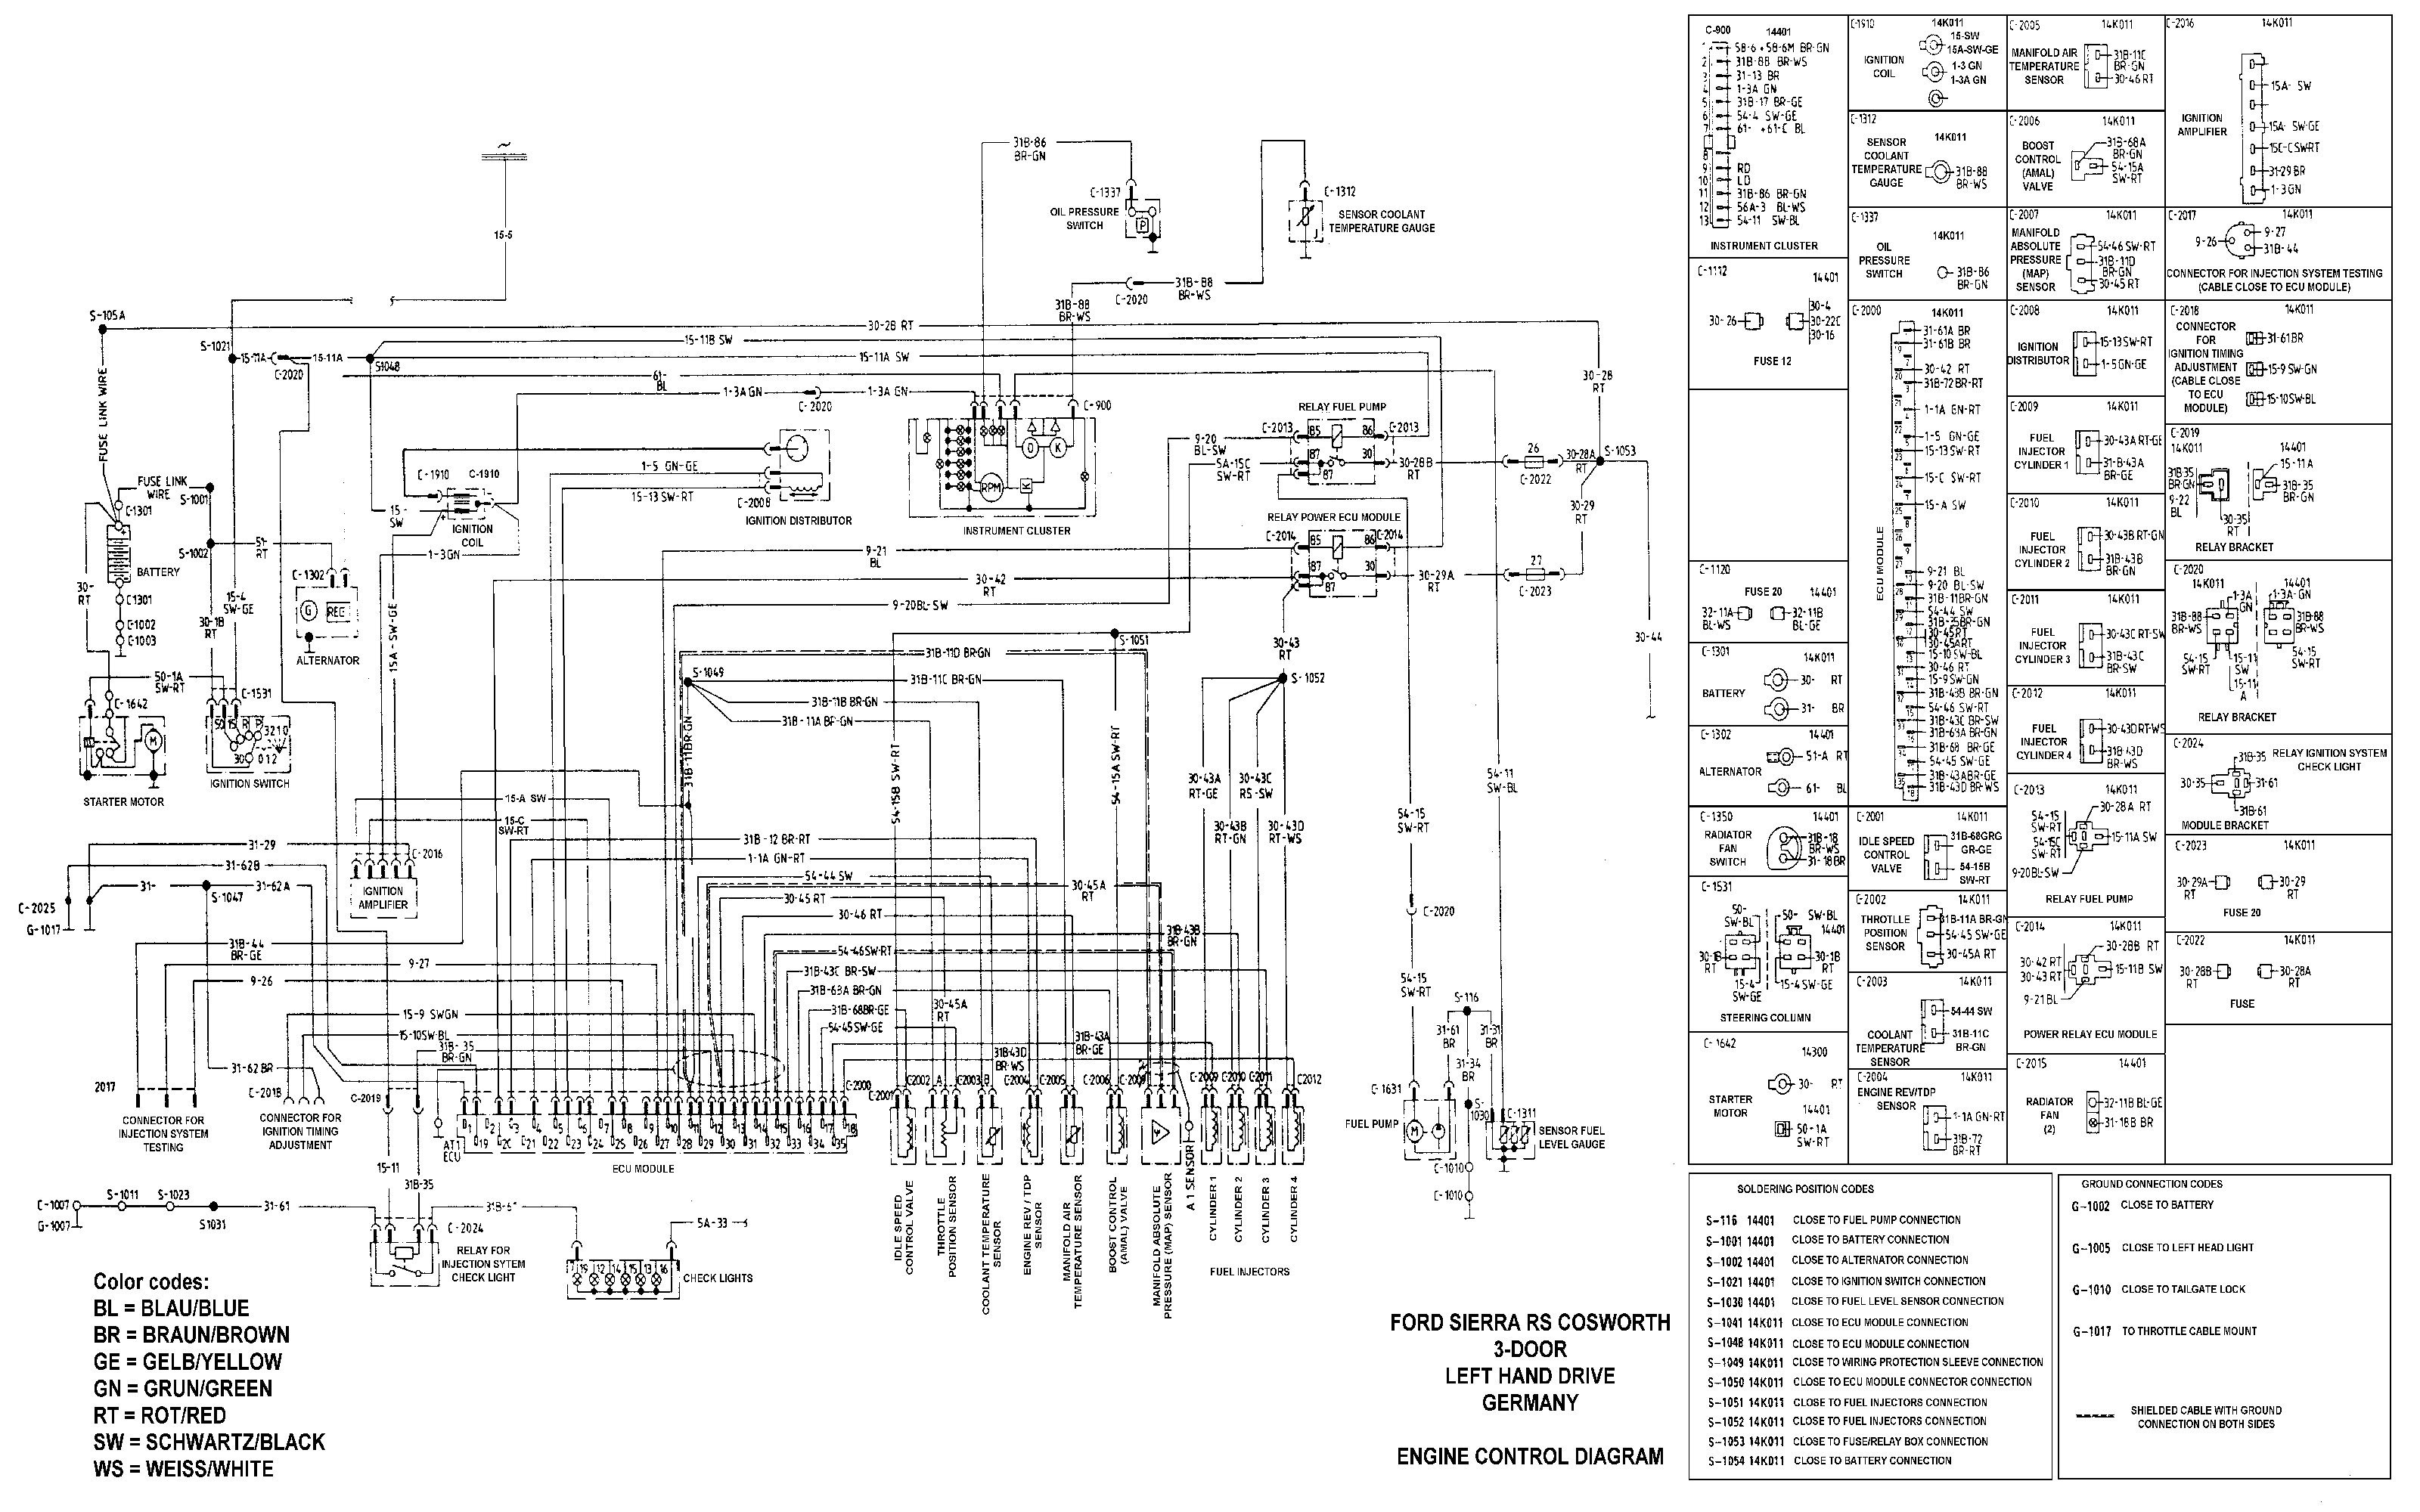 2006 ford focus engine diagram 2011 ford fiesta engine diagram best ford fiesta mk7 od 2008 roku of 2006 ford focus engine diagram 1